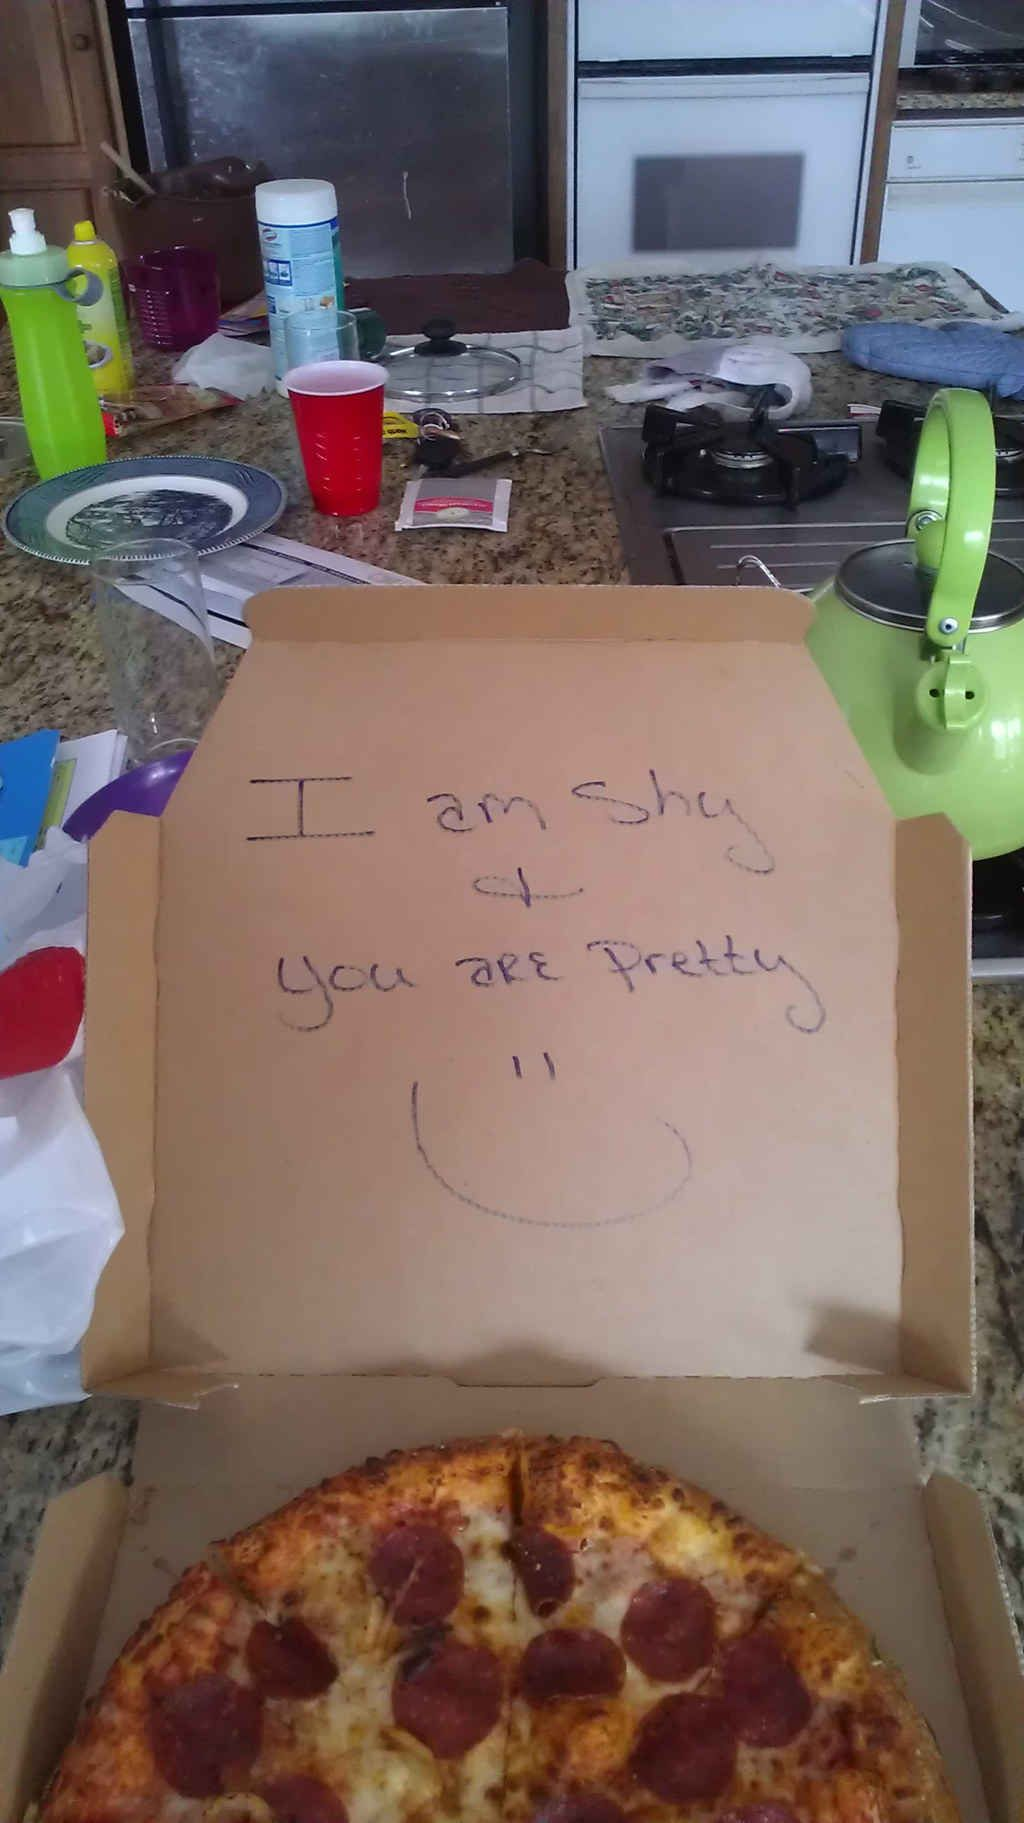 21 Reasons Delivery People Are America's Unsung Heroes